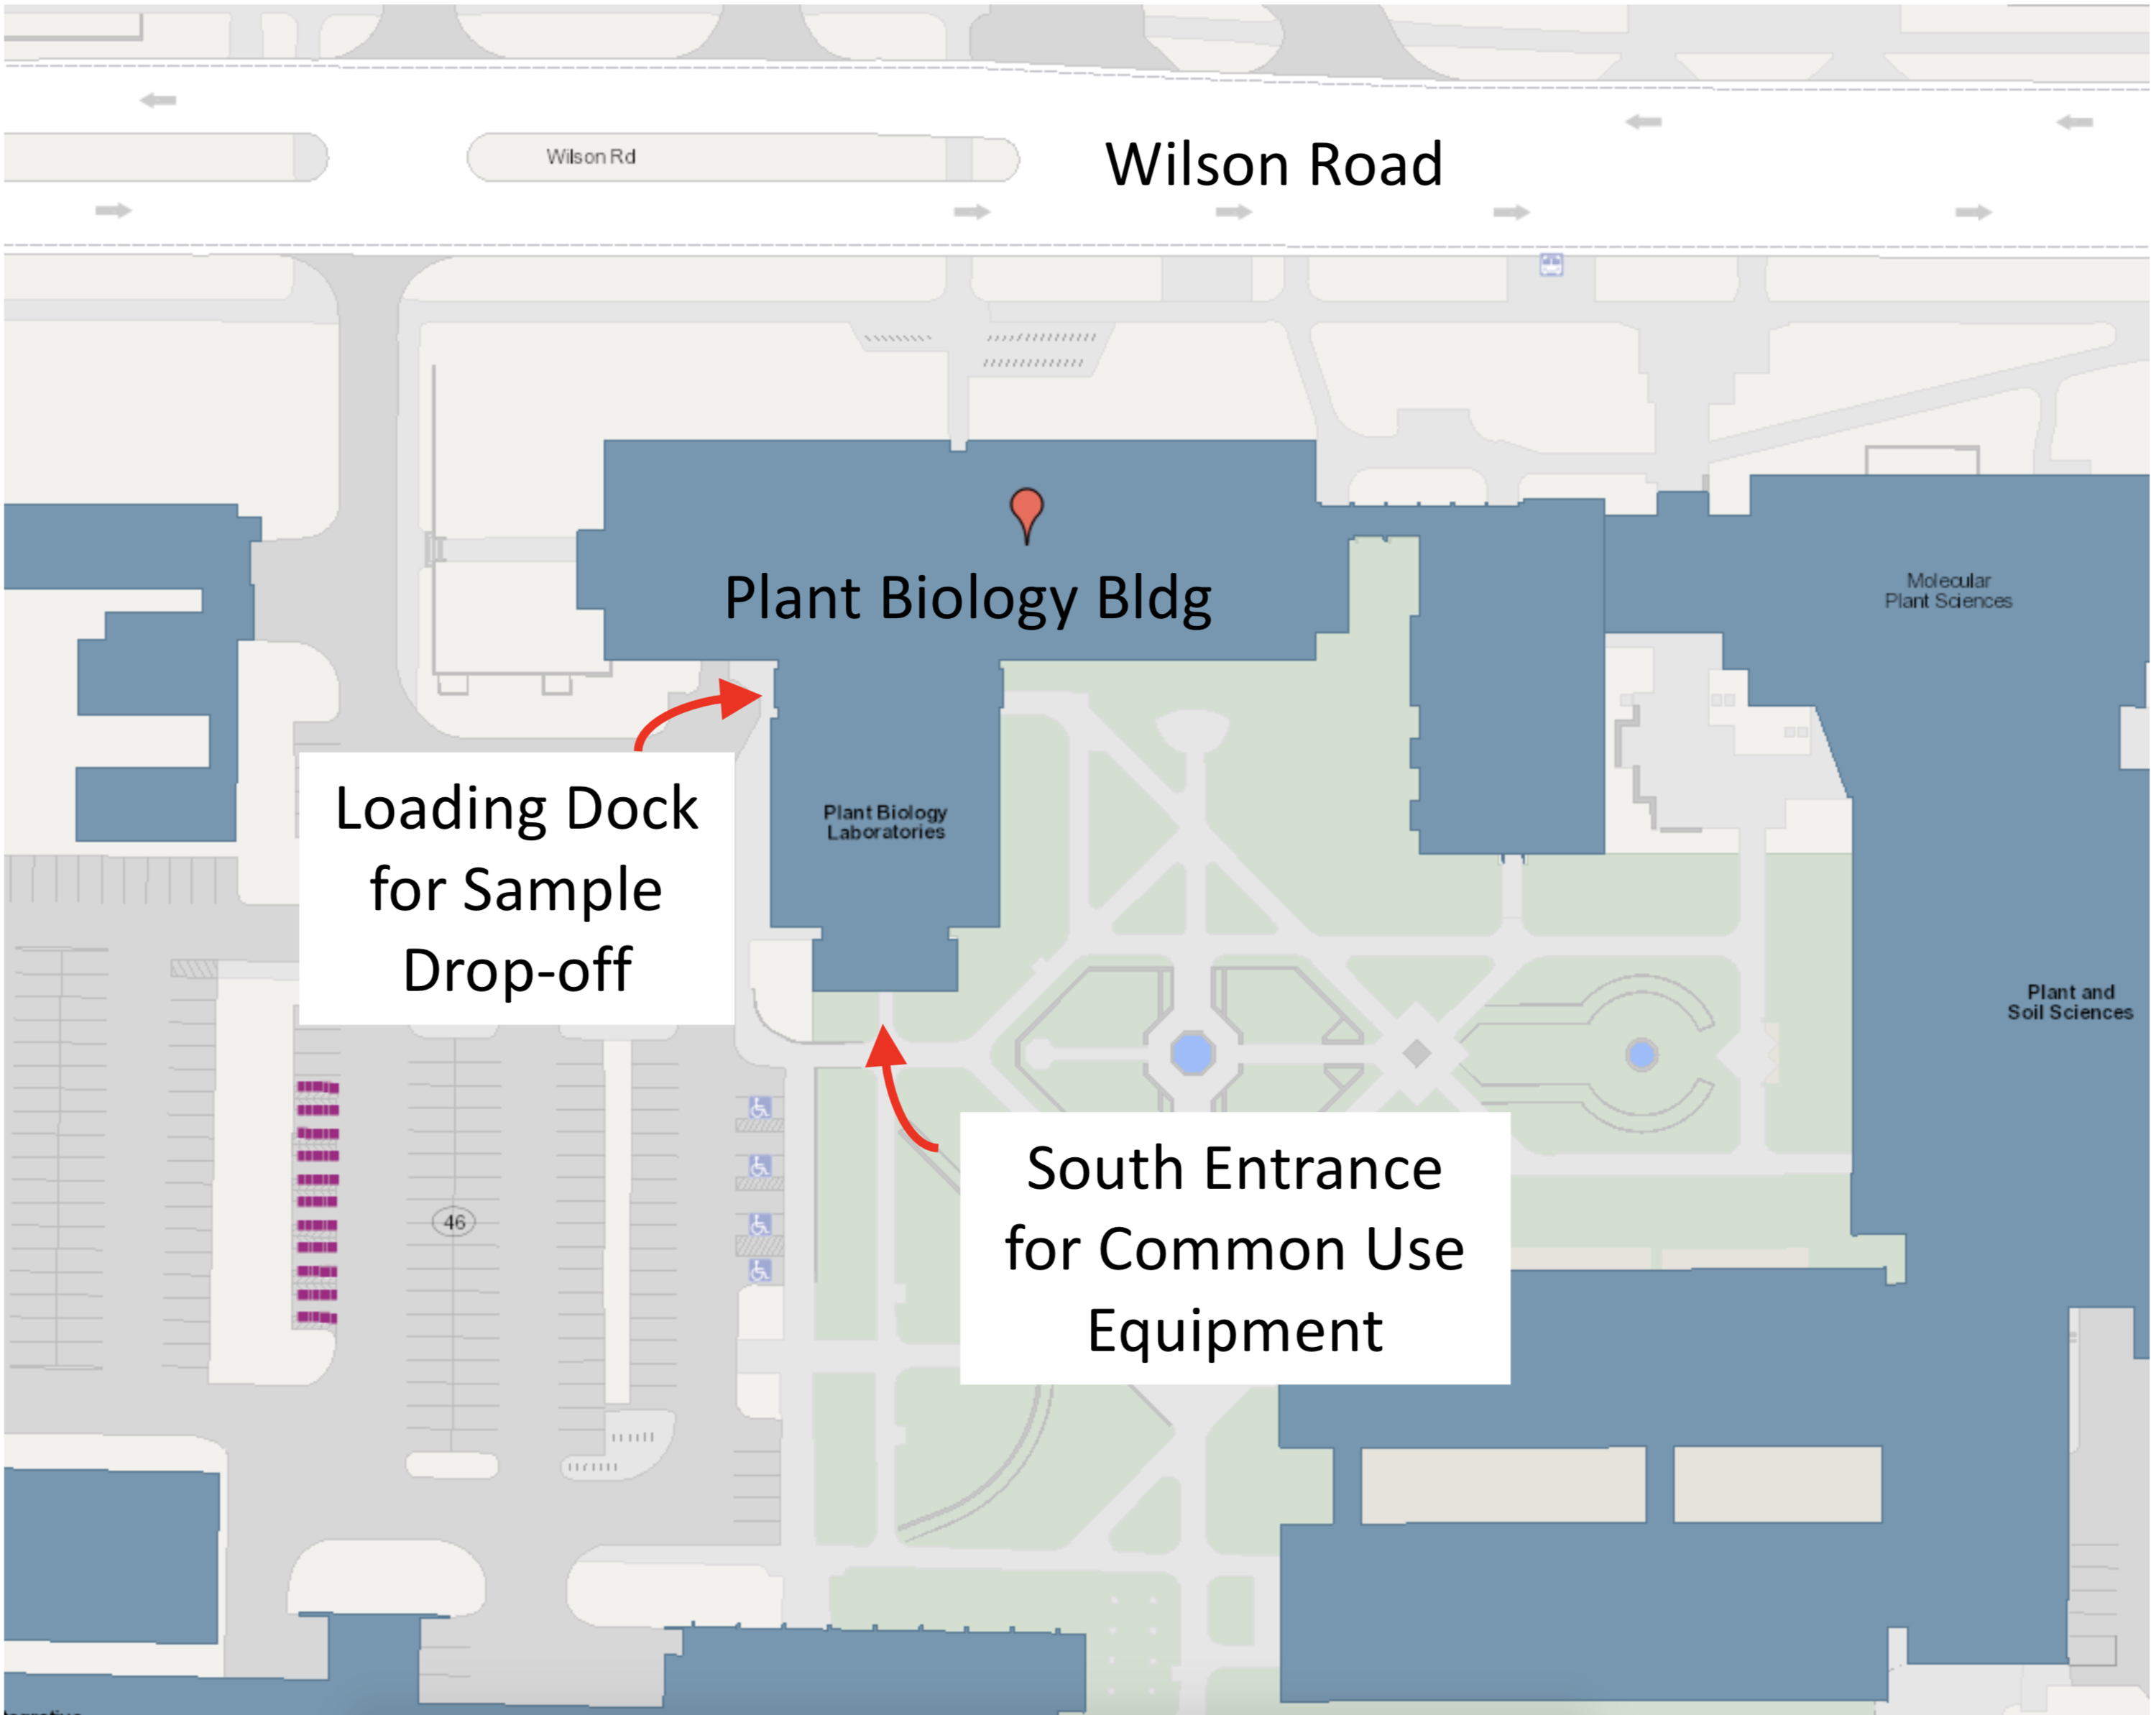 Plant biology building map showing the loading dock and south entrance